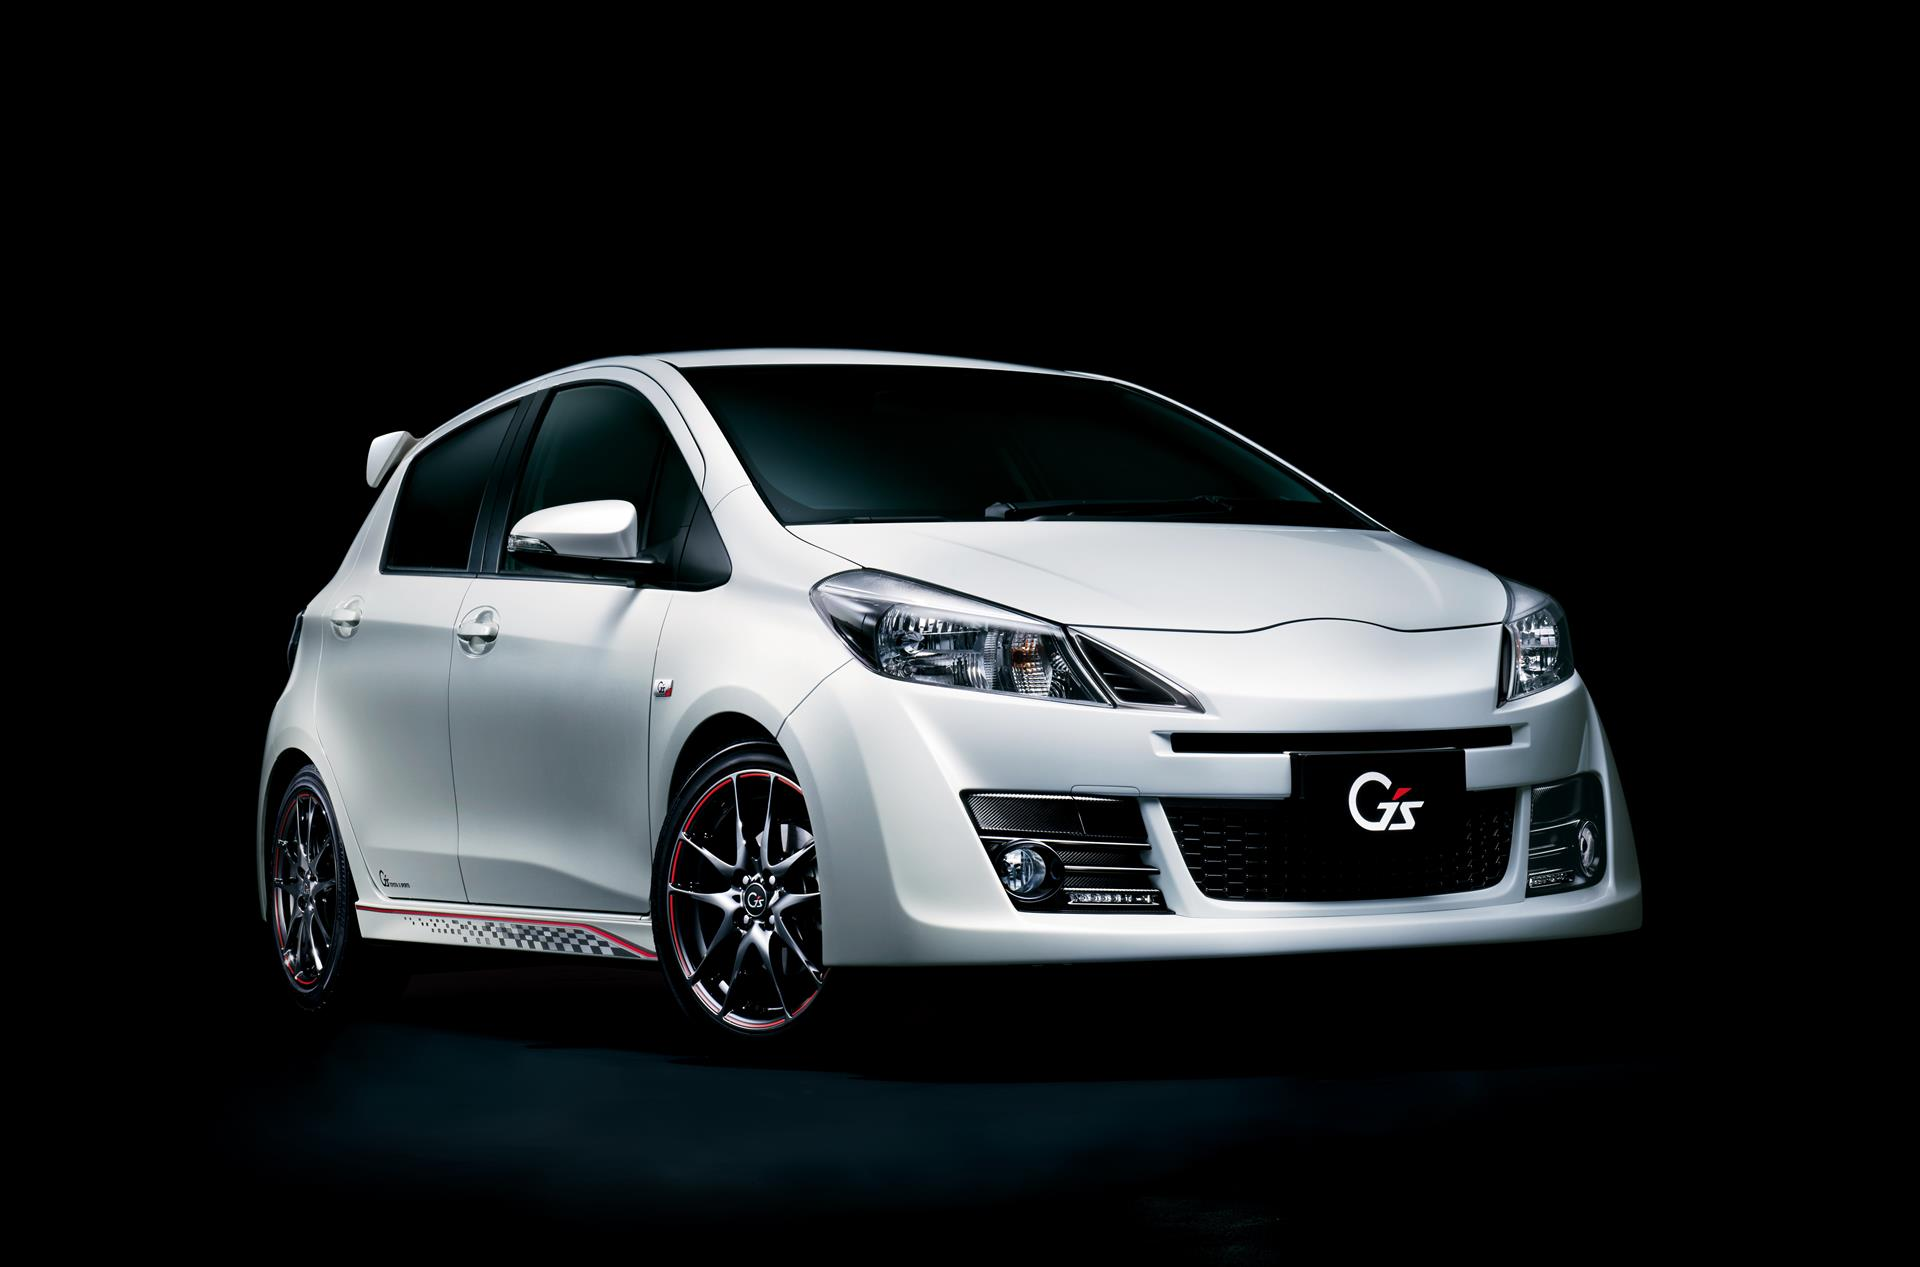 Toyota Most Expensive Car >> Toyota Yaris (Vitz) Gets Aygo-Style Facelift - autoevolution